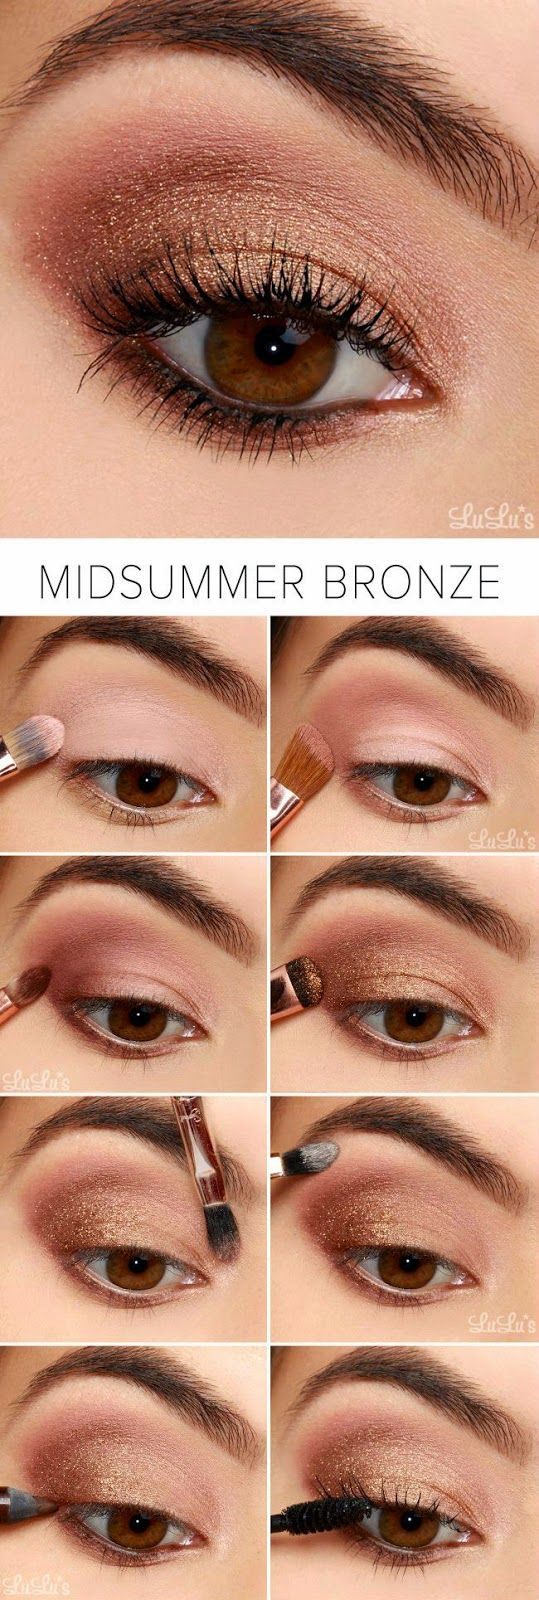 Latest Summer Makeup Ideas & Trends 2018-2019 Beauty Tips